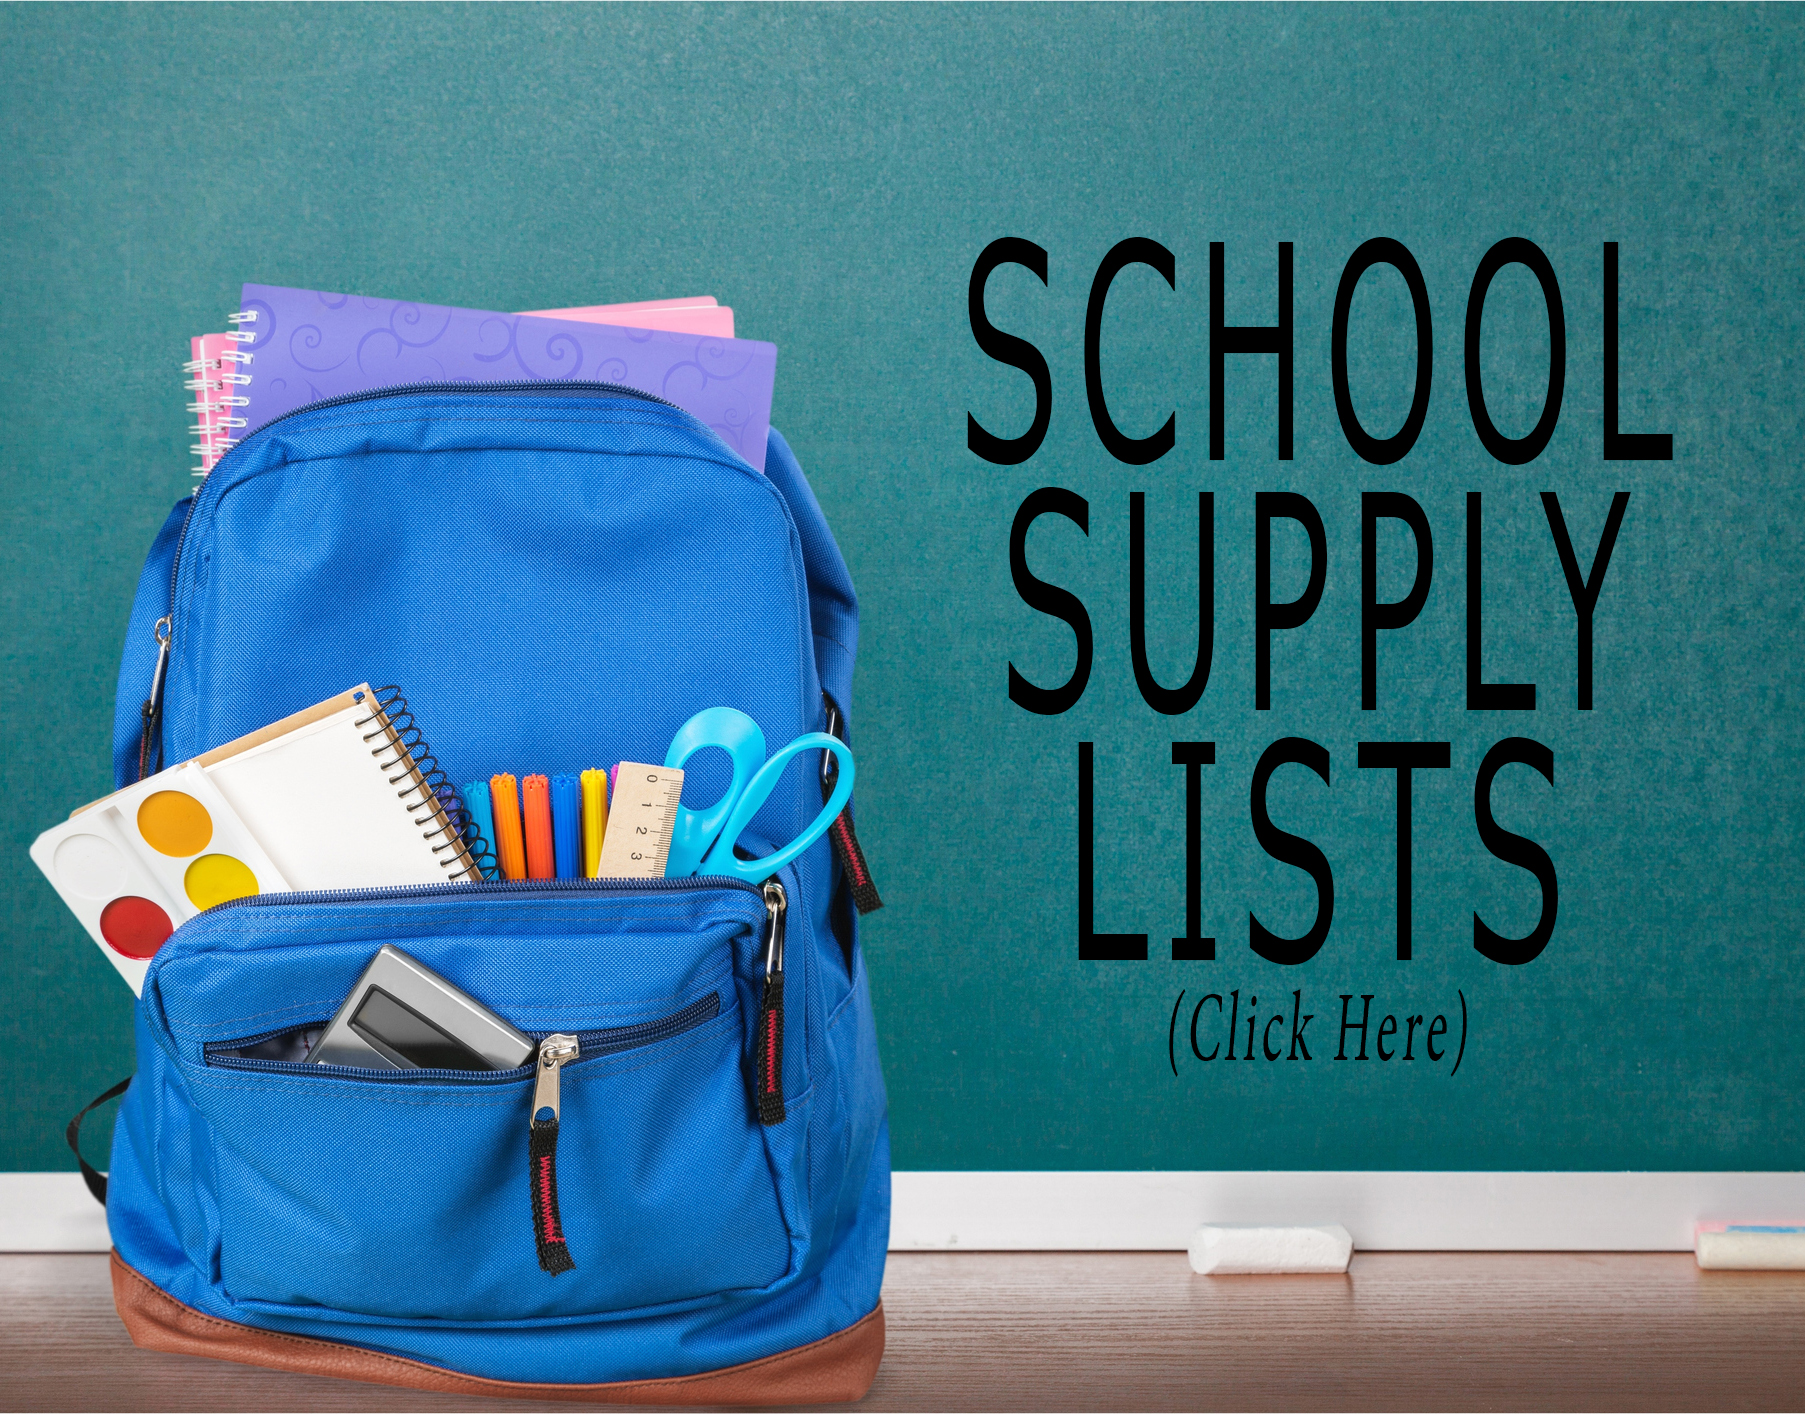 School Supply Wish List